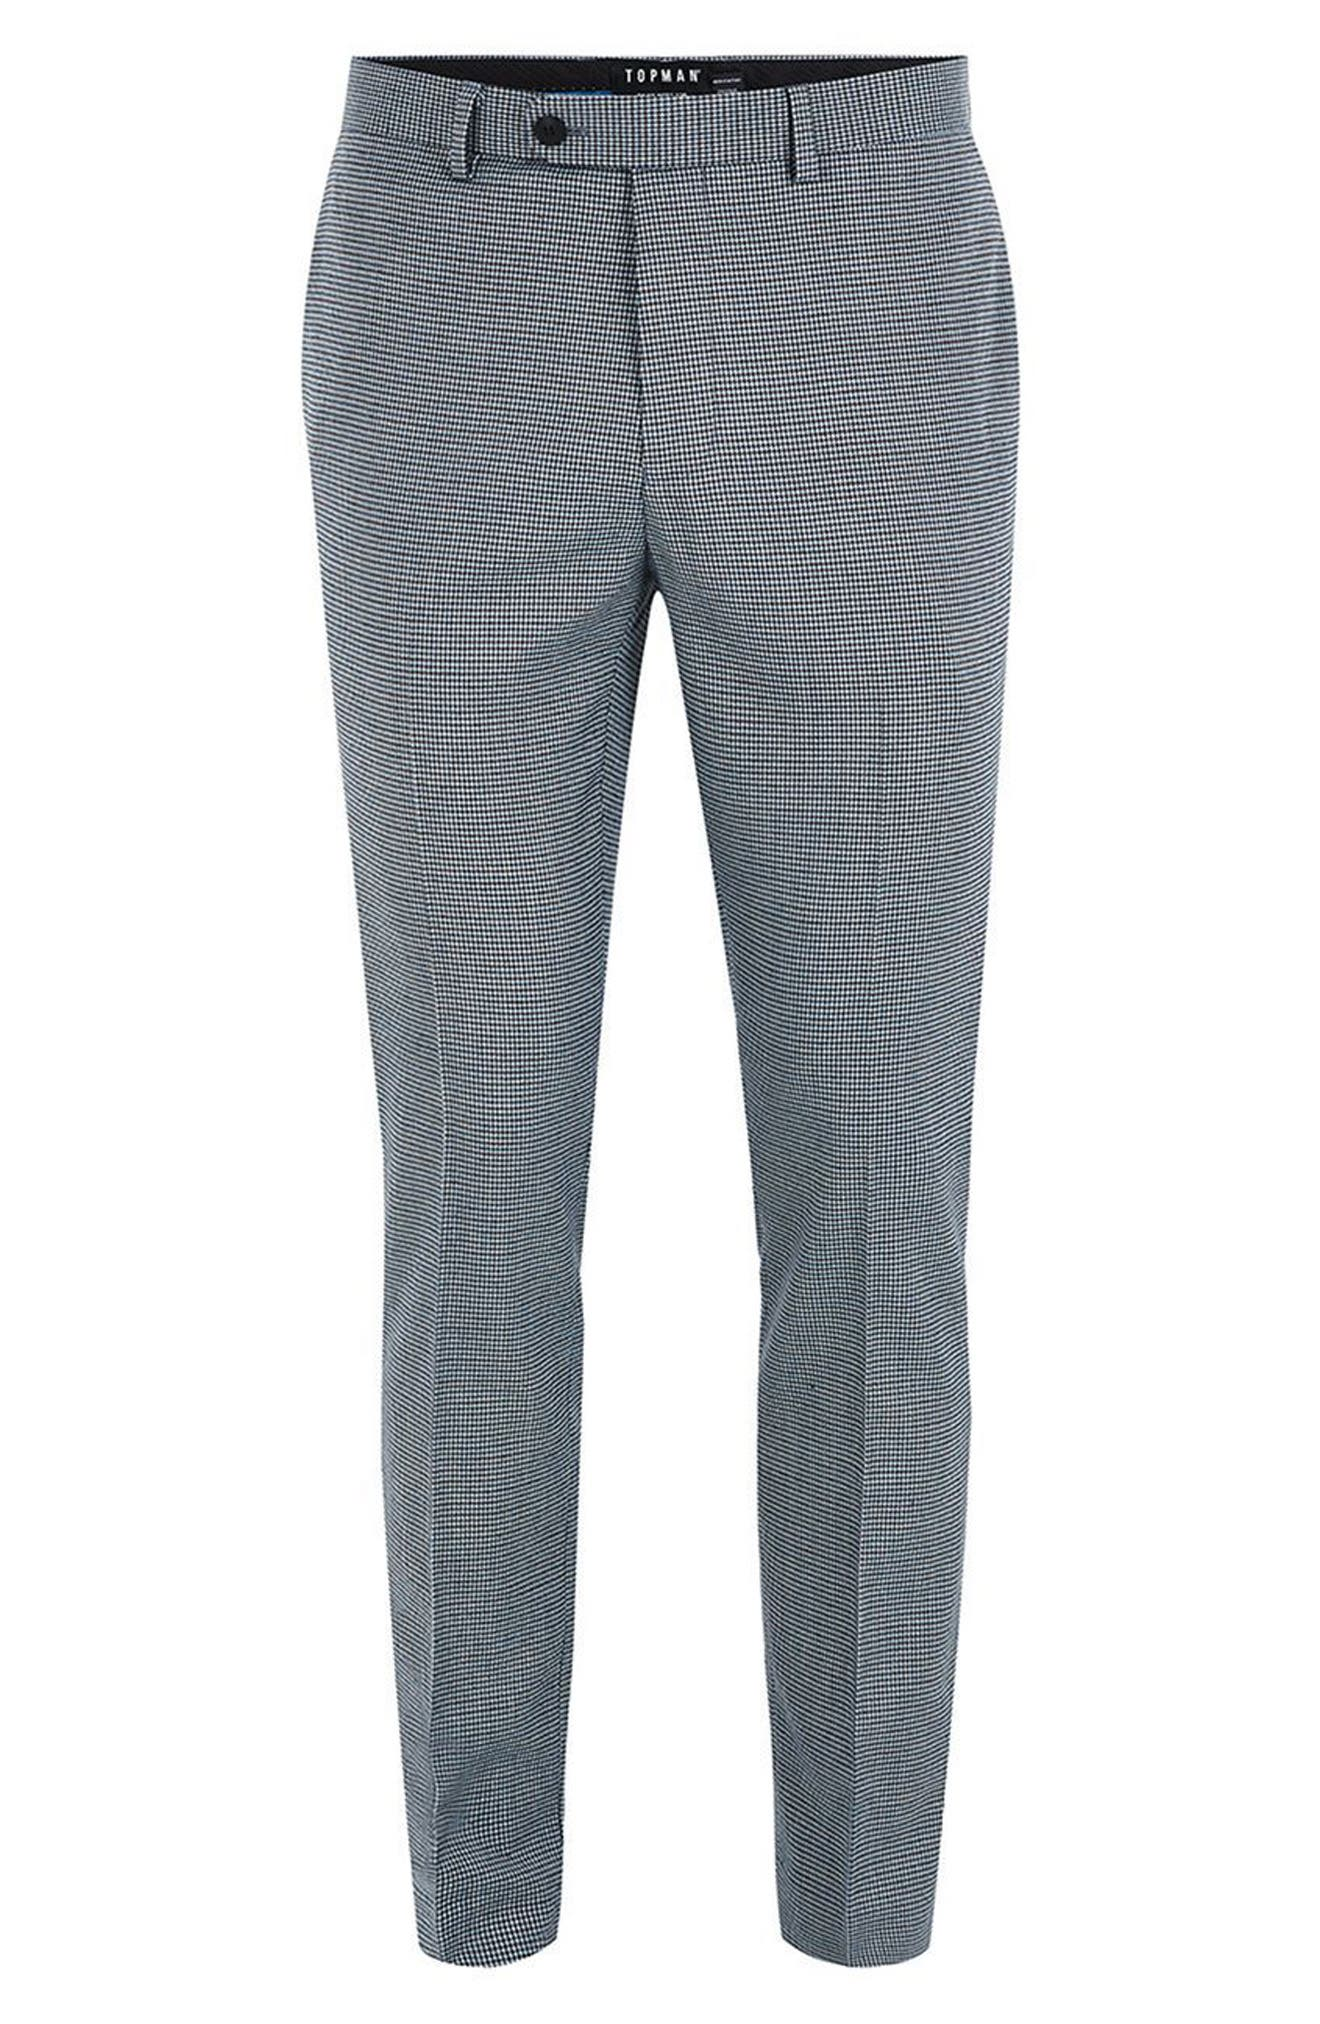 Skinny Fit Houndstooth Suit Trousers,                             Alternate thumbnail 4, color,                             300